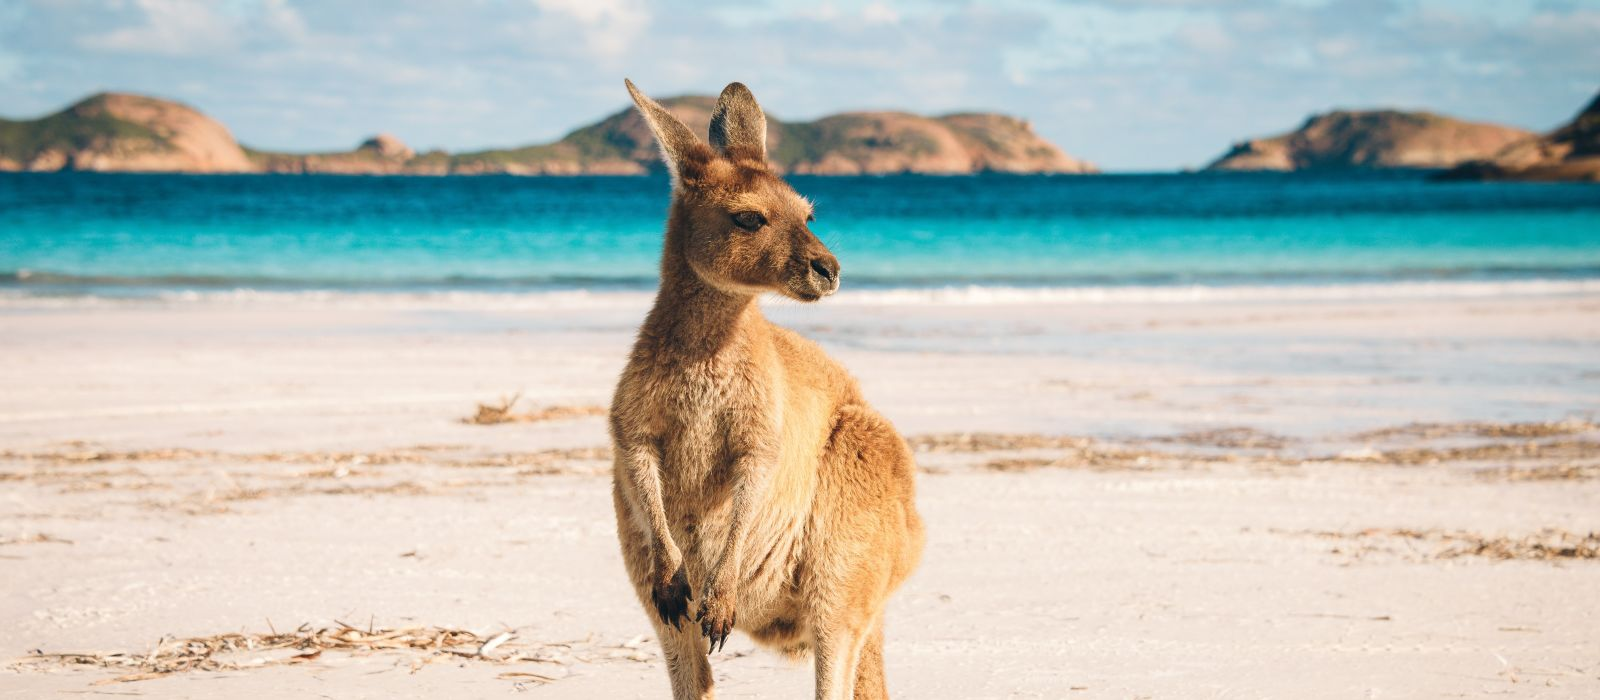 Kangaroo at Lucky Bay, Cape Le Grand National Park near Esperance, Western Australia